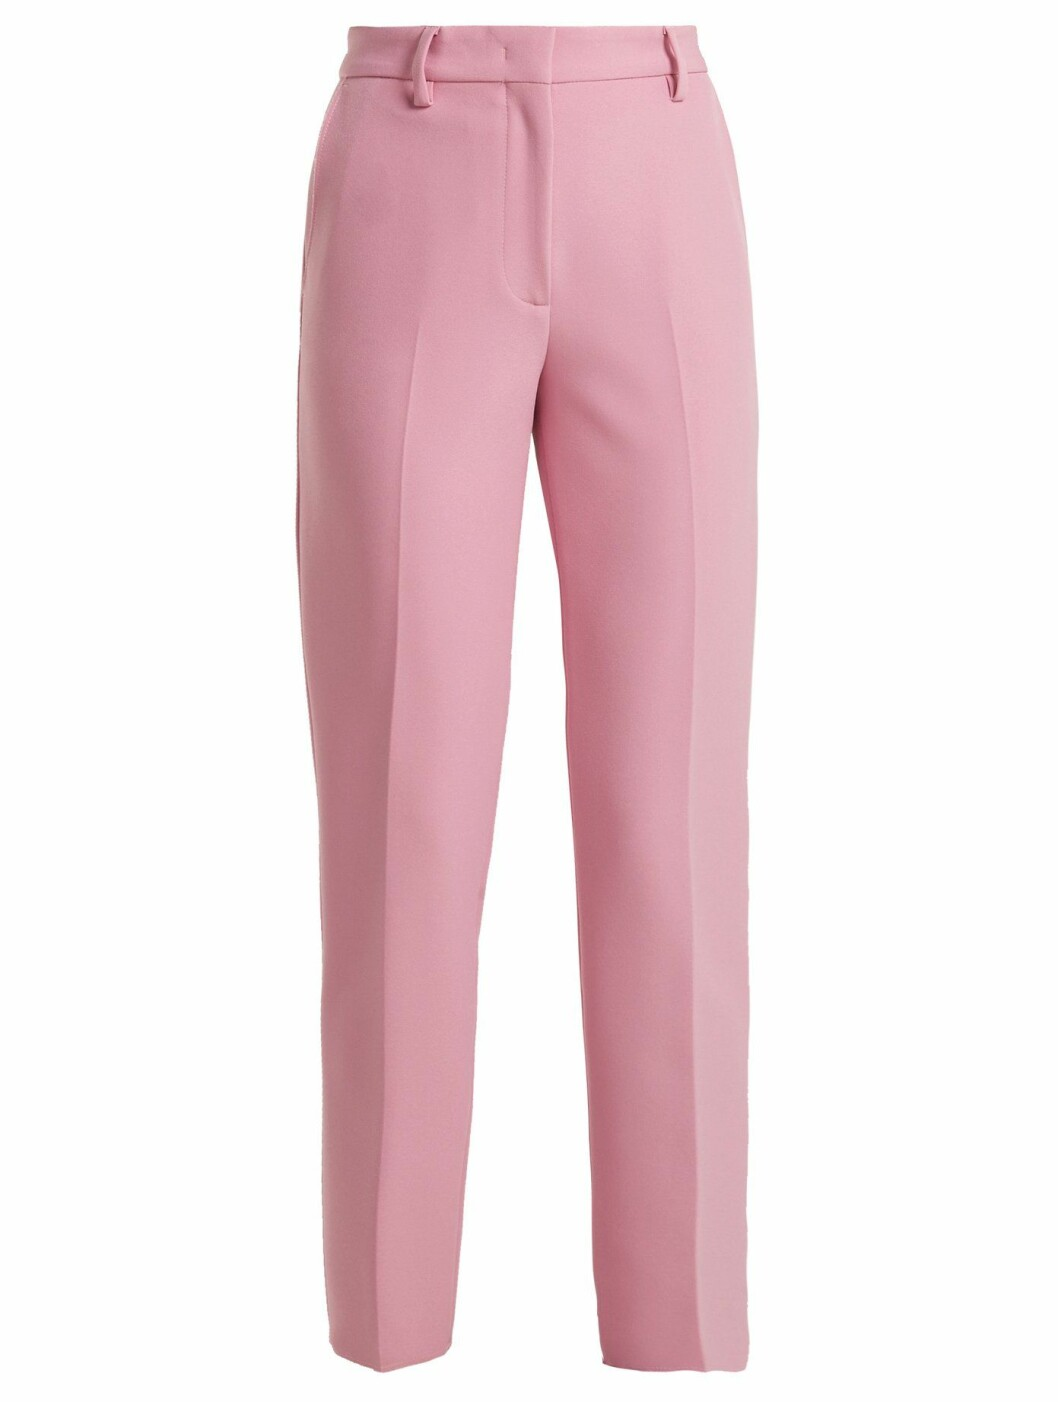 Bukse fra MSGM  1890,-  https://www.matchesfashion.com/intl/products/MSGM-Mid-rise-crepe-trousers--1209802